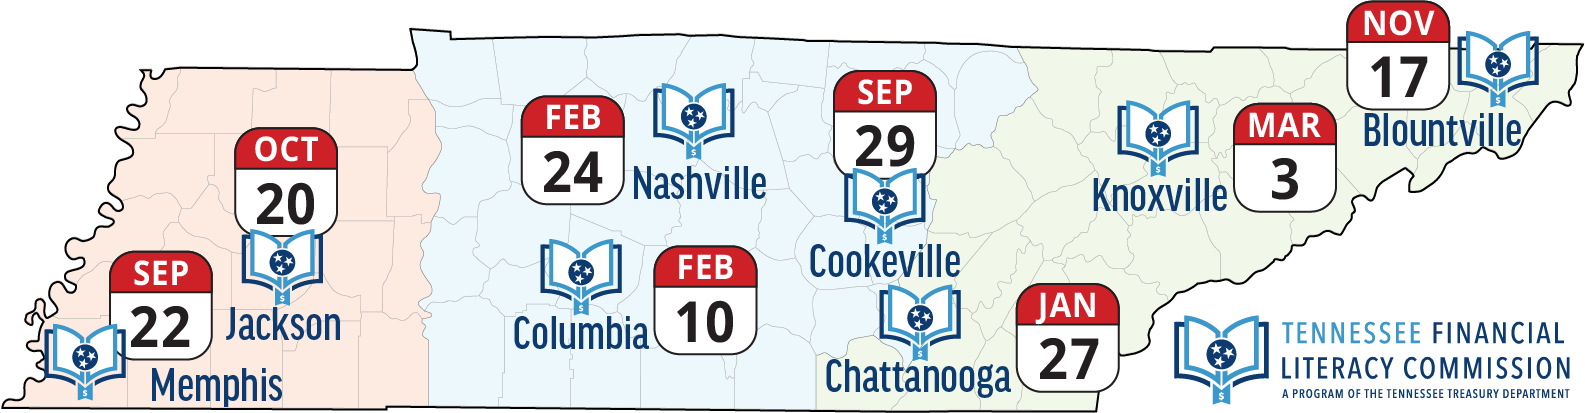 Map of Tennessee showing locations of 2018 educator summits